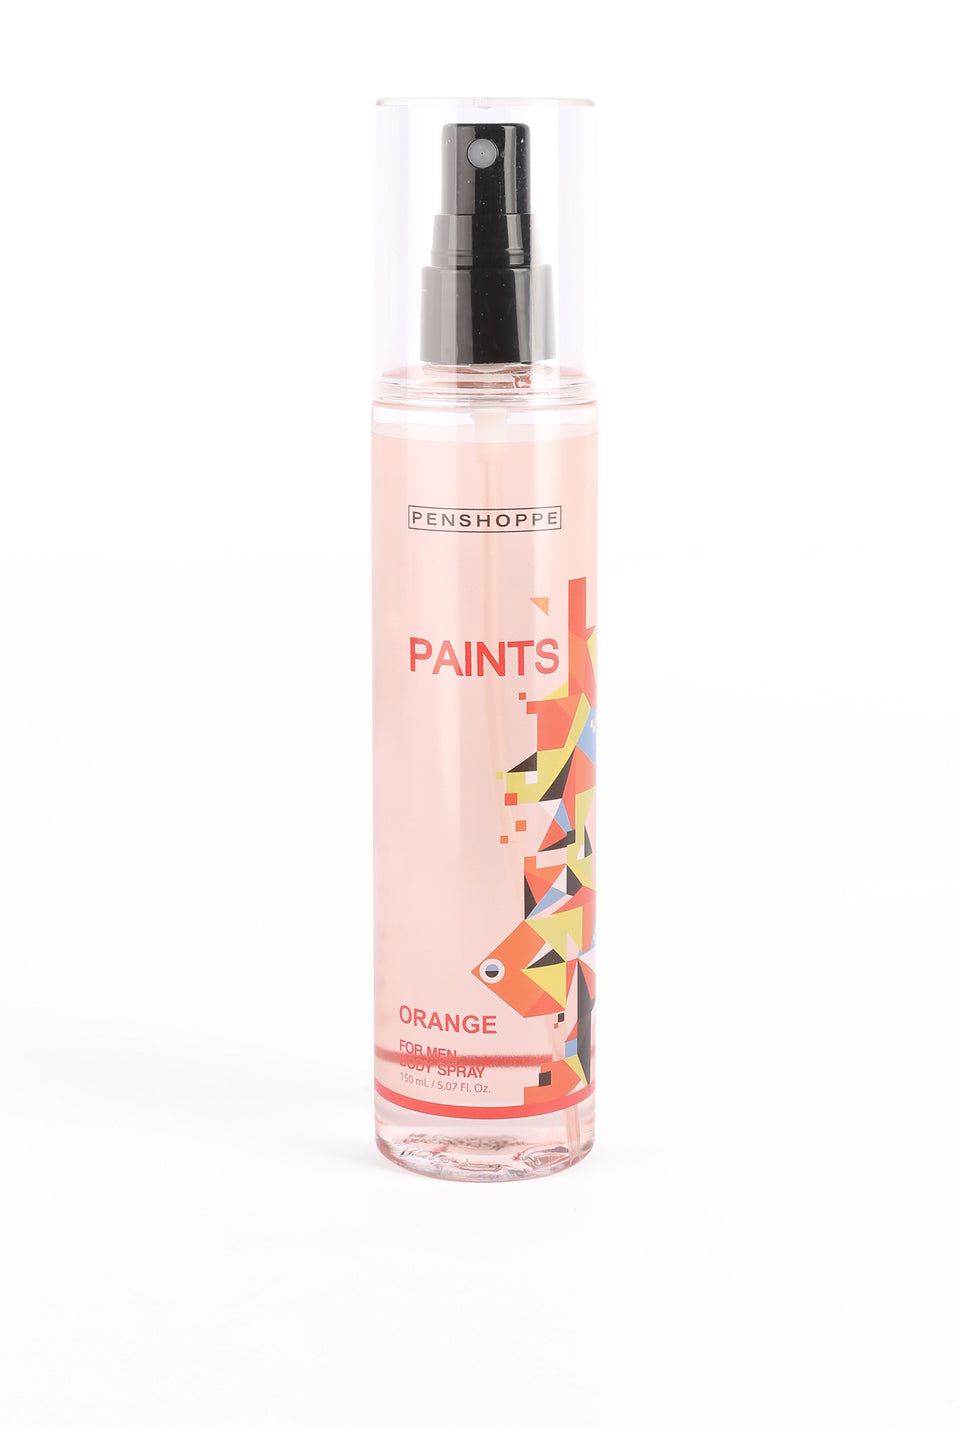 Penshoppe Paints Orange Body Spray For Men 150ML